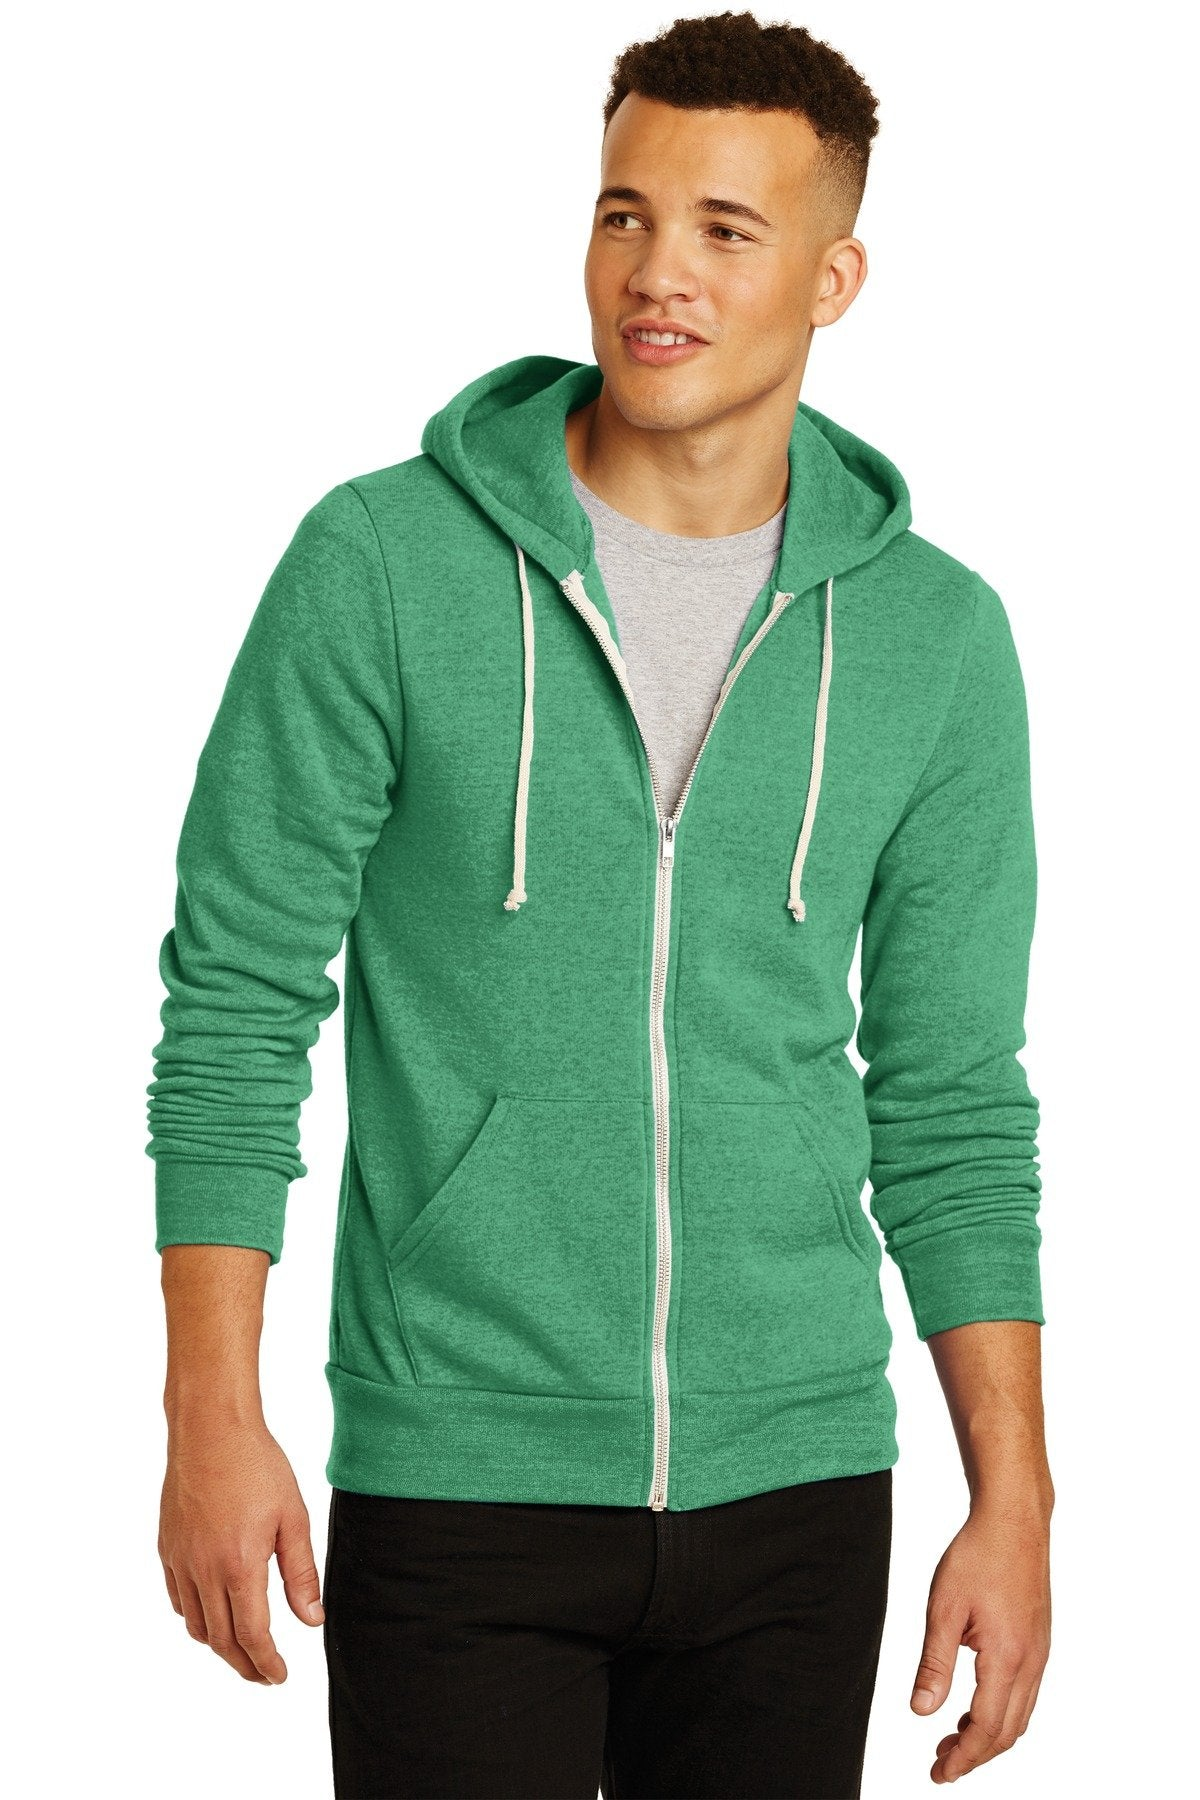 Eco True Green - Alternative Apparel AA9590